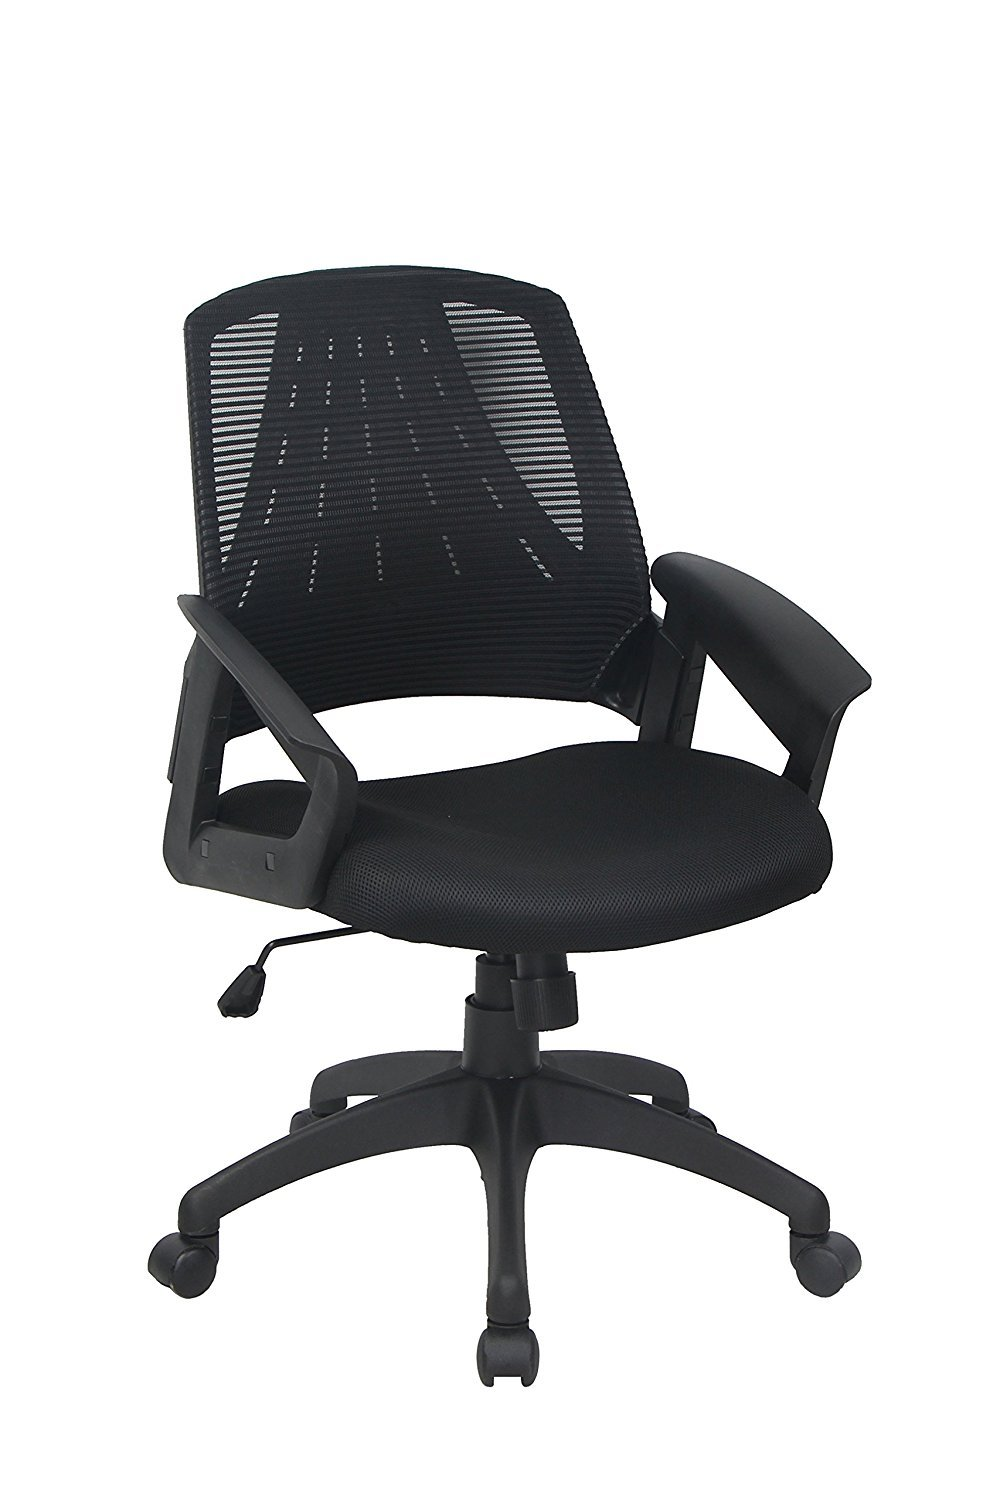 BONUM Adjustable Desk Office Chair Mid-Back Mesh Fabric Swivel Home Task Chair with Padded Seat and Armrest - Black (Black)